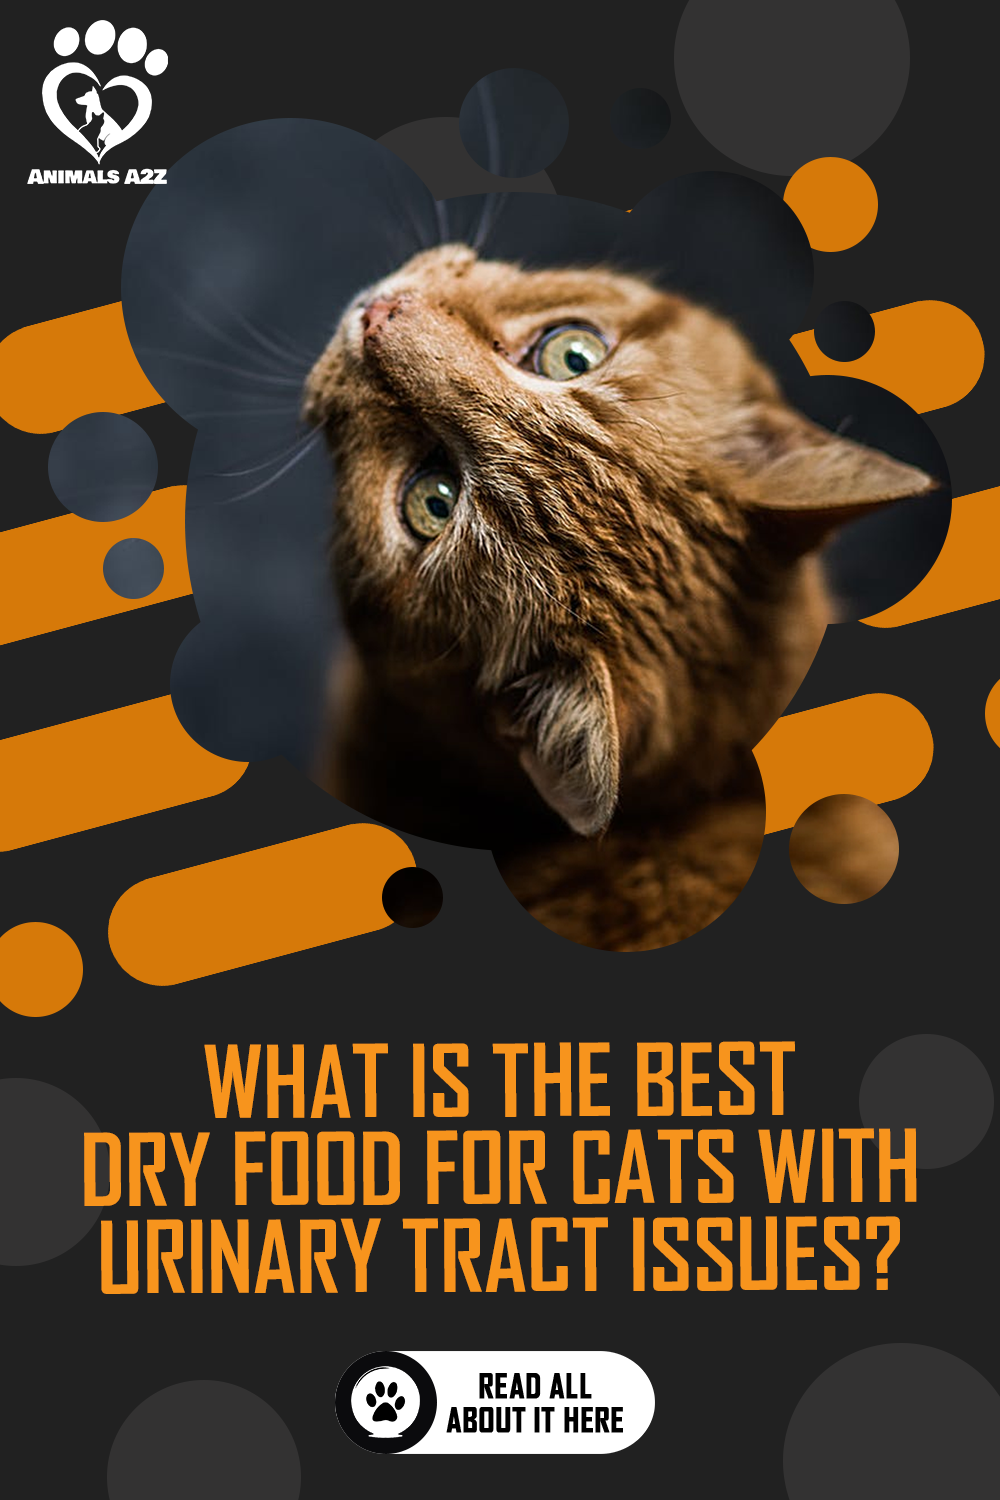 What Is the Best Dry Food for Cats with Urinary Tract